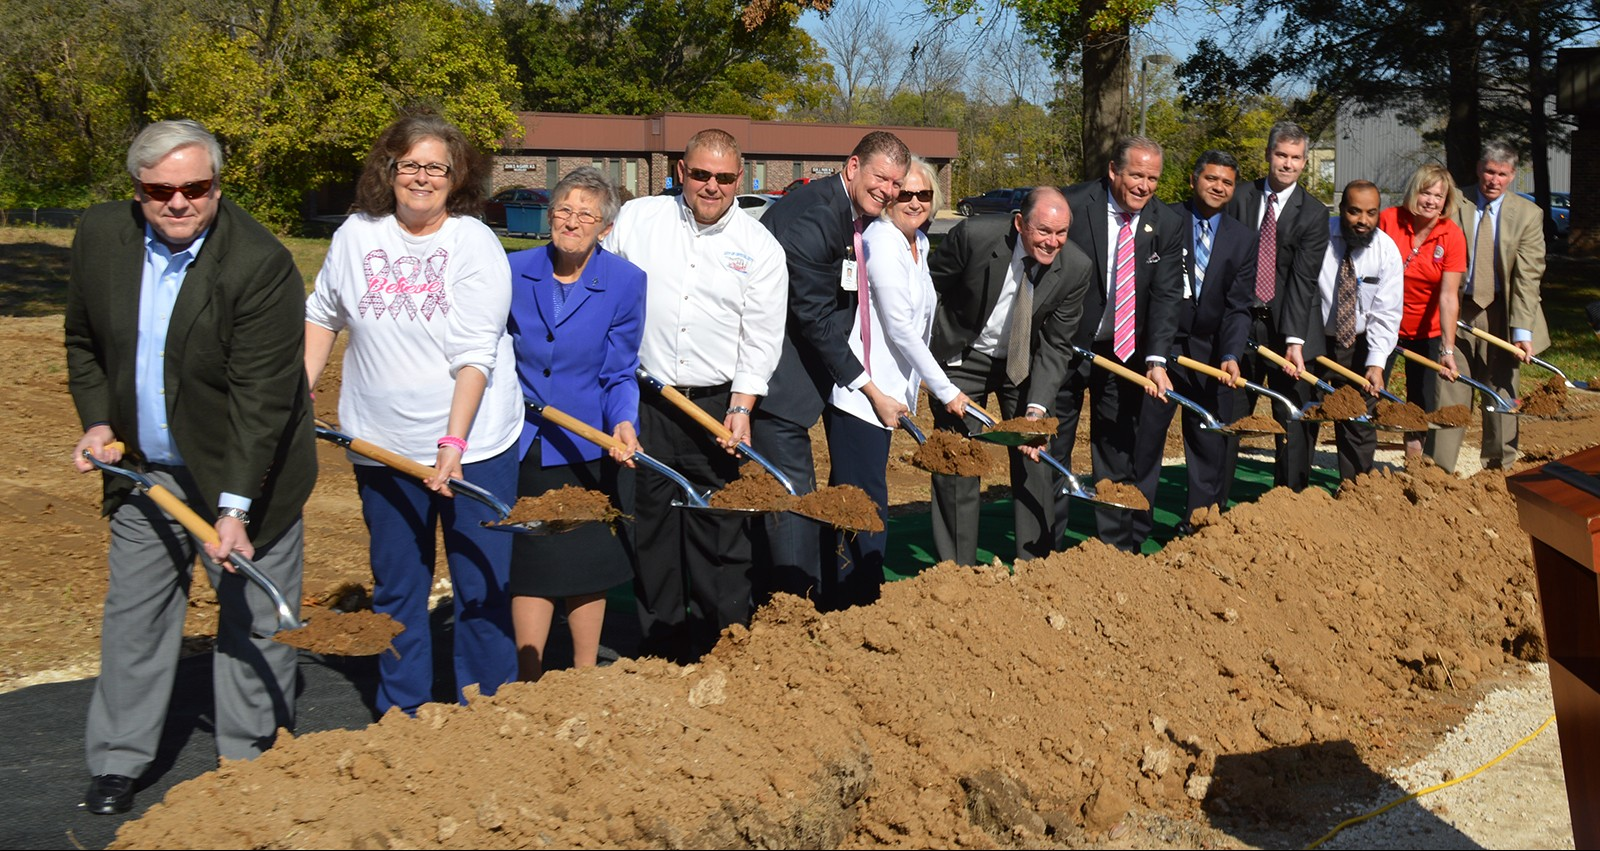 A picture perfect day kicked off the construction of the new Mercy Cancer Center Jefferson.